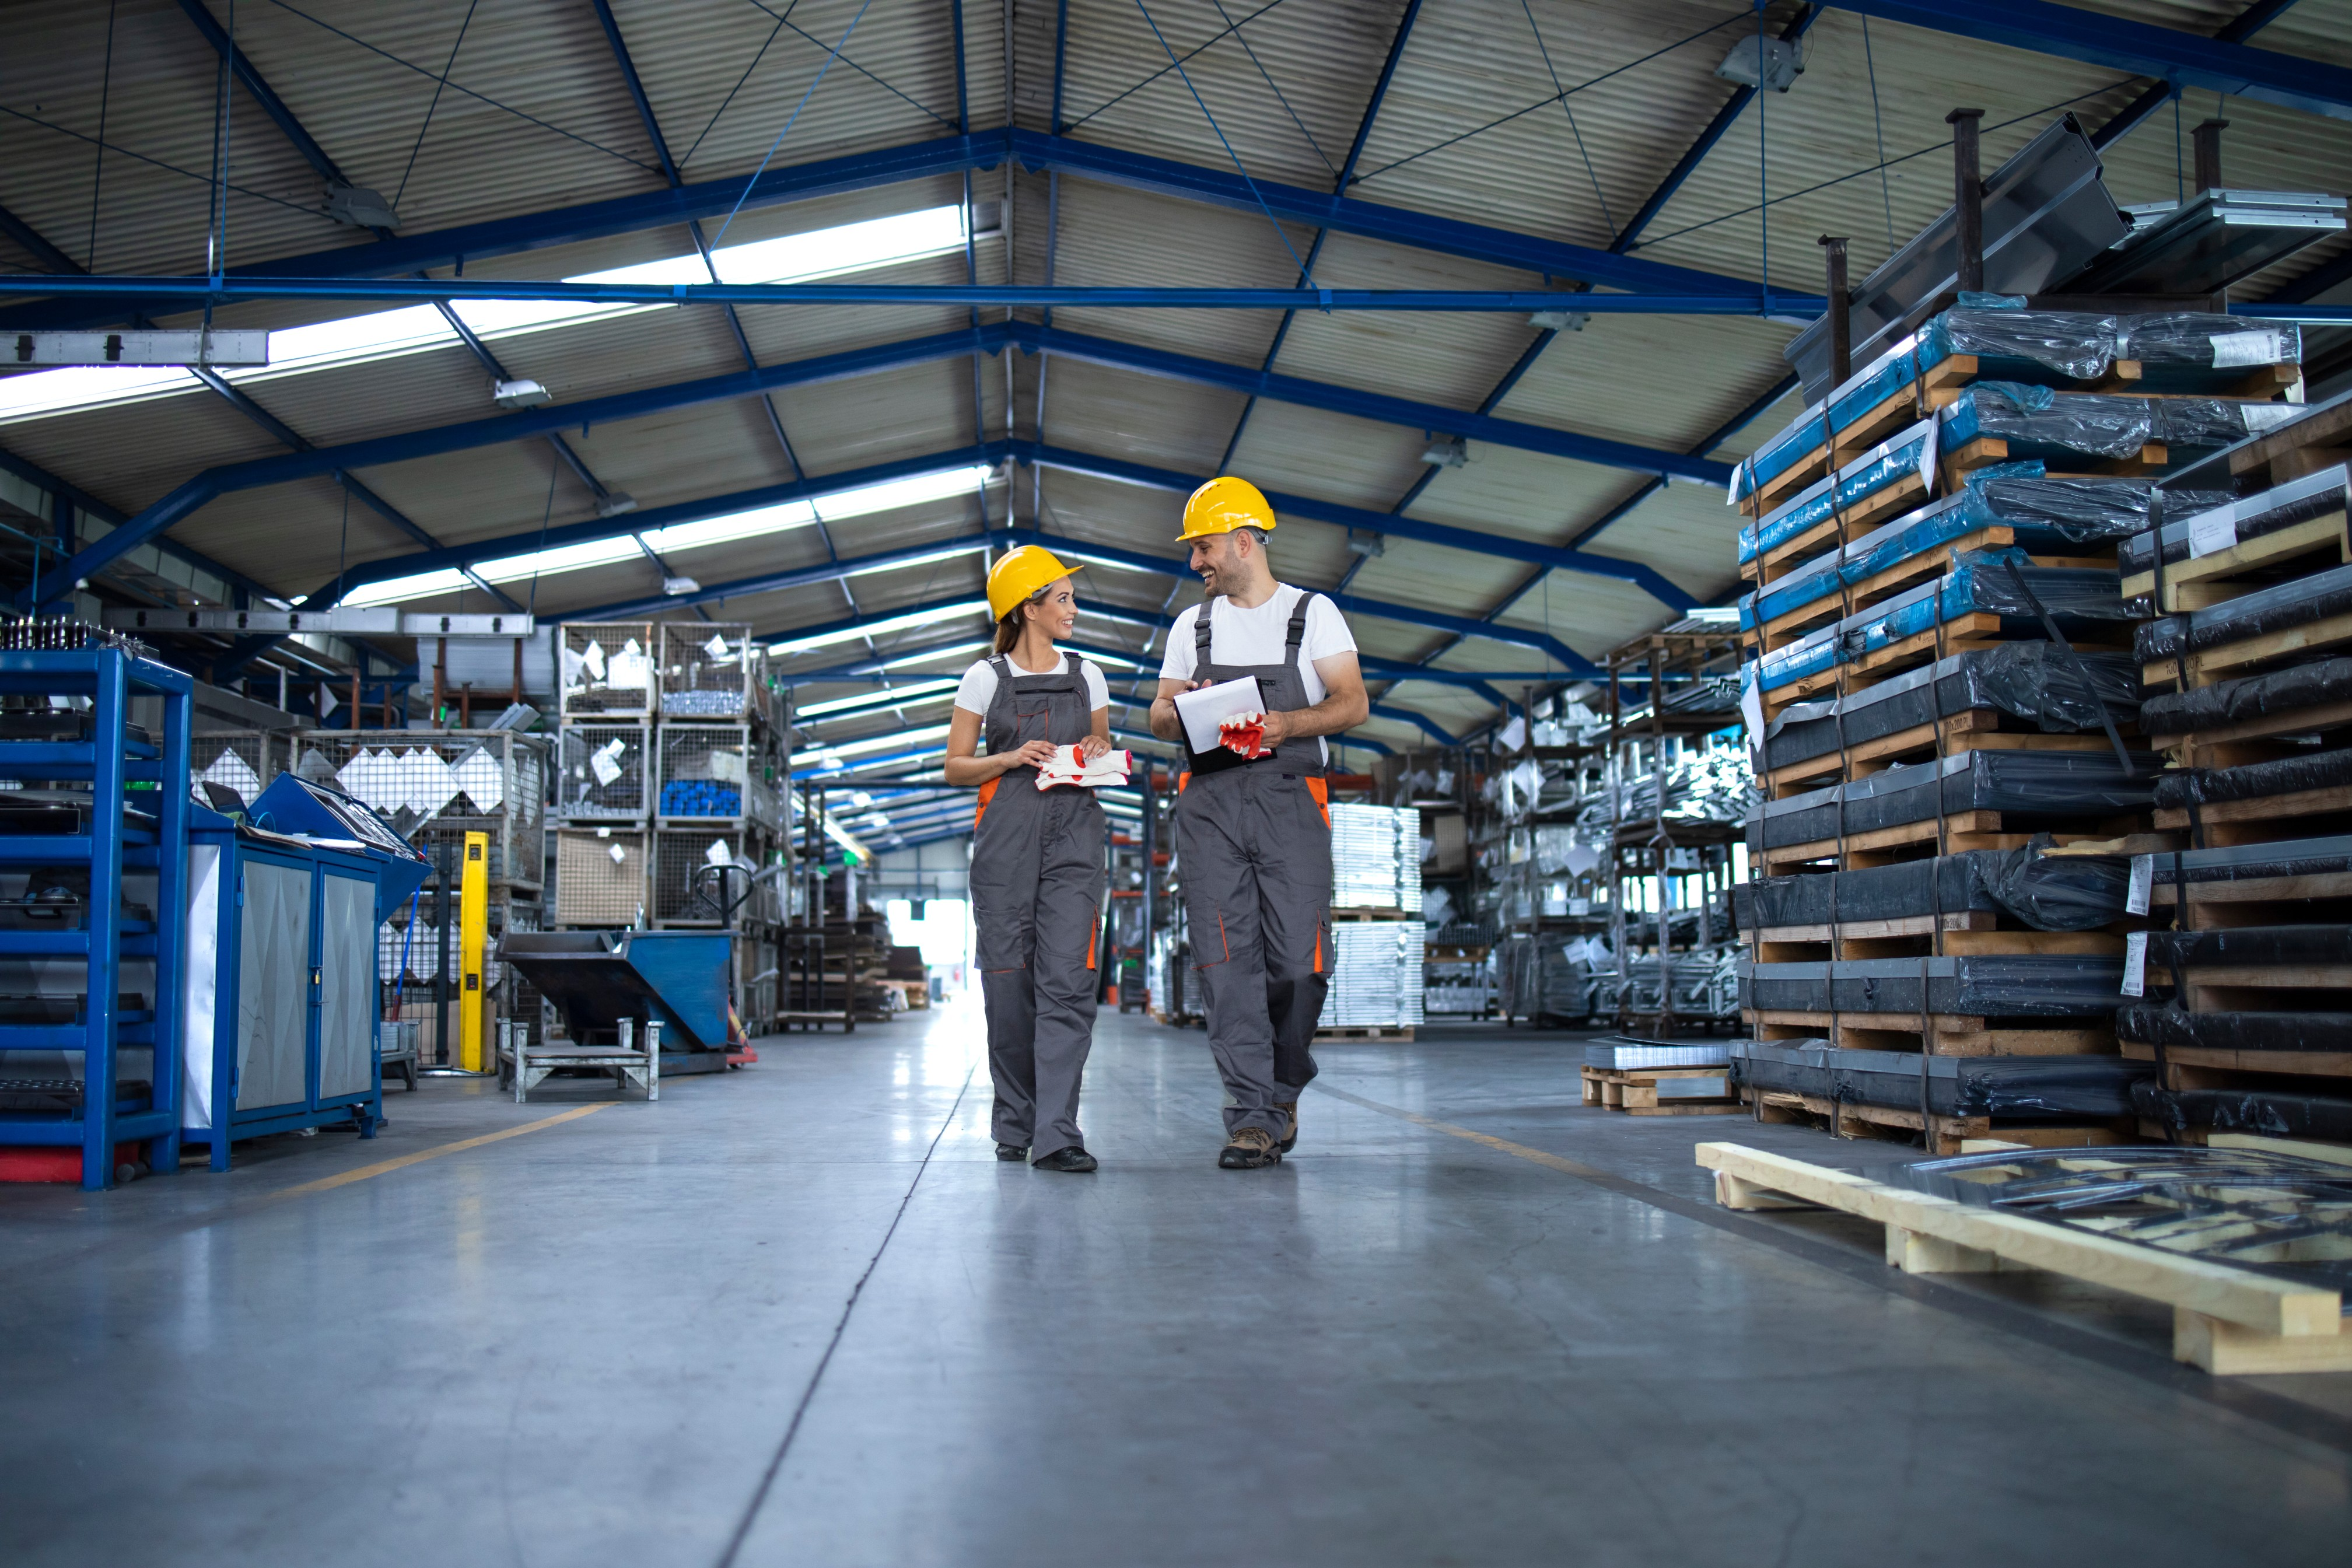 factory-workers-work-wear-yellow-helmets-walking-through-industrial-production-hall-discussing-about-delivery-deadline (1).jpg